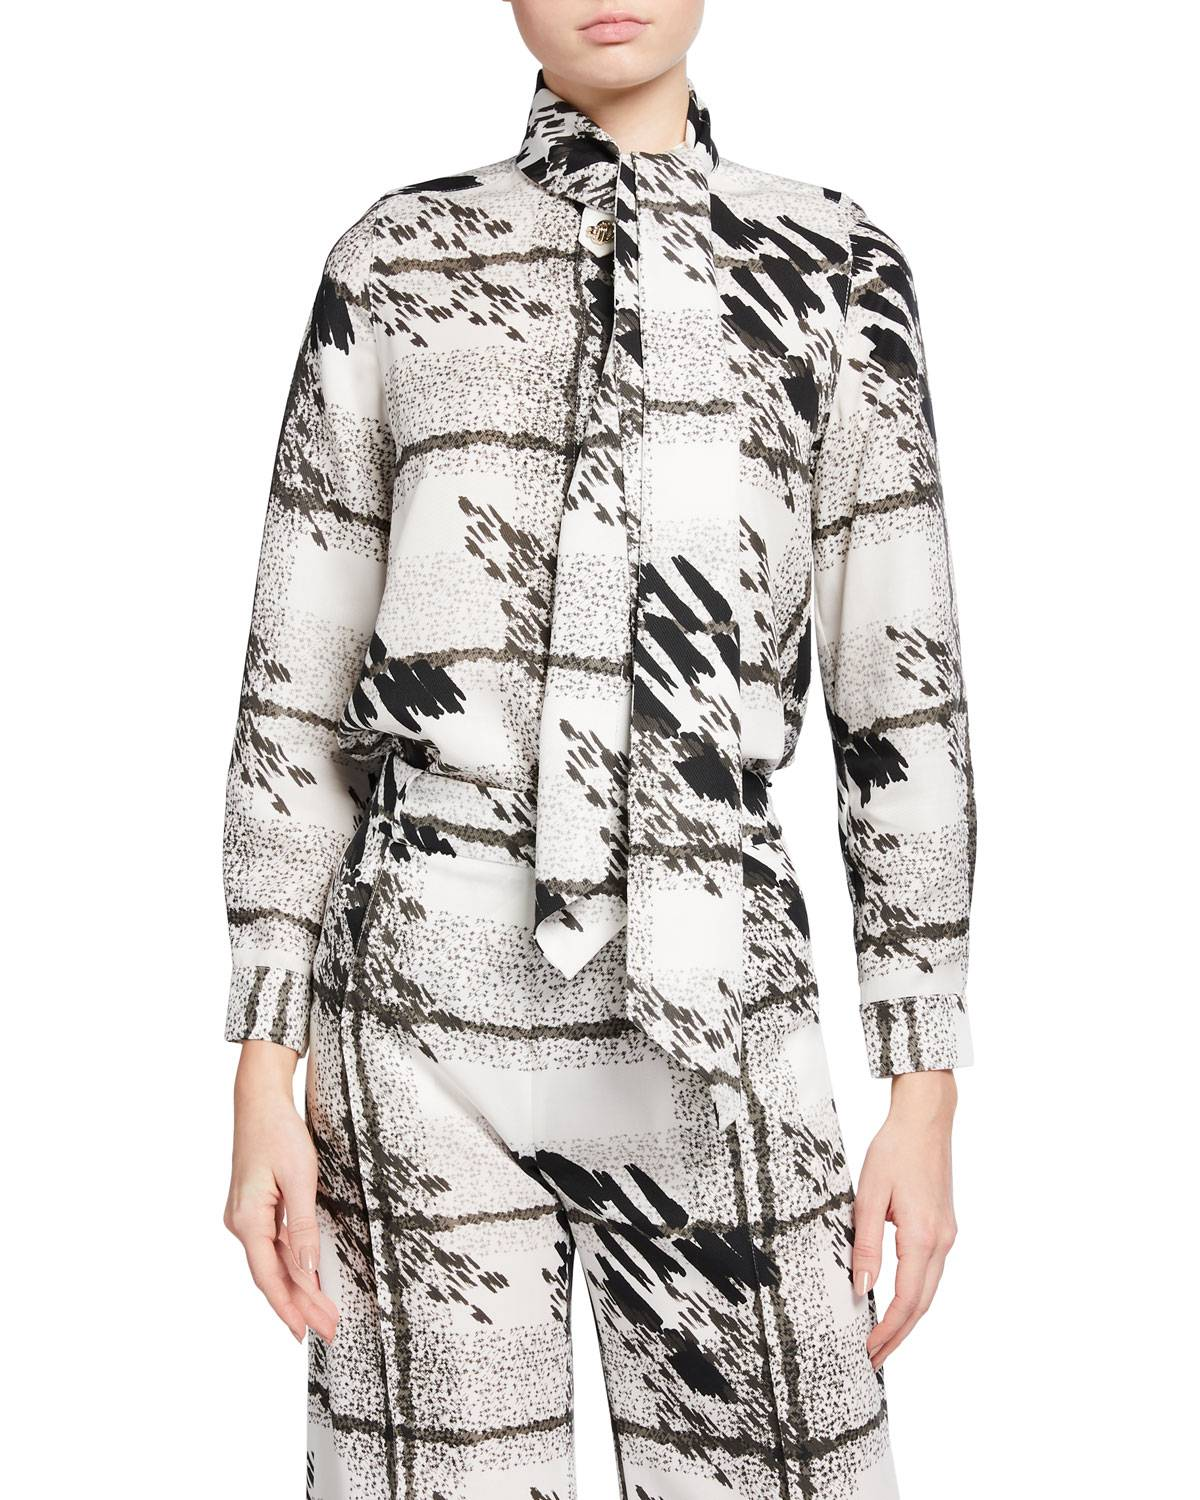 Pearl Printed Blouse with Neck Scarf - Size: 8 UK (4 US)